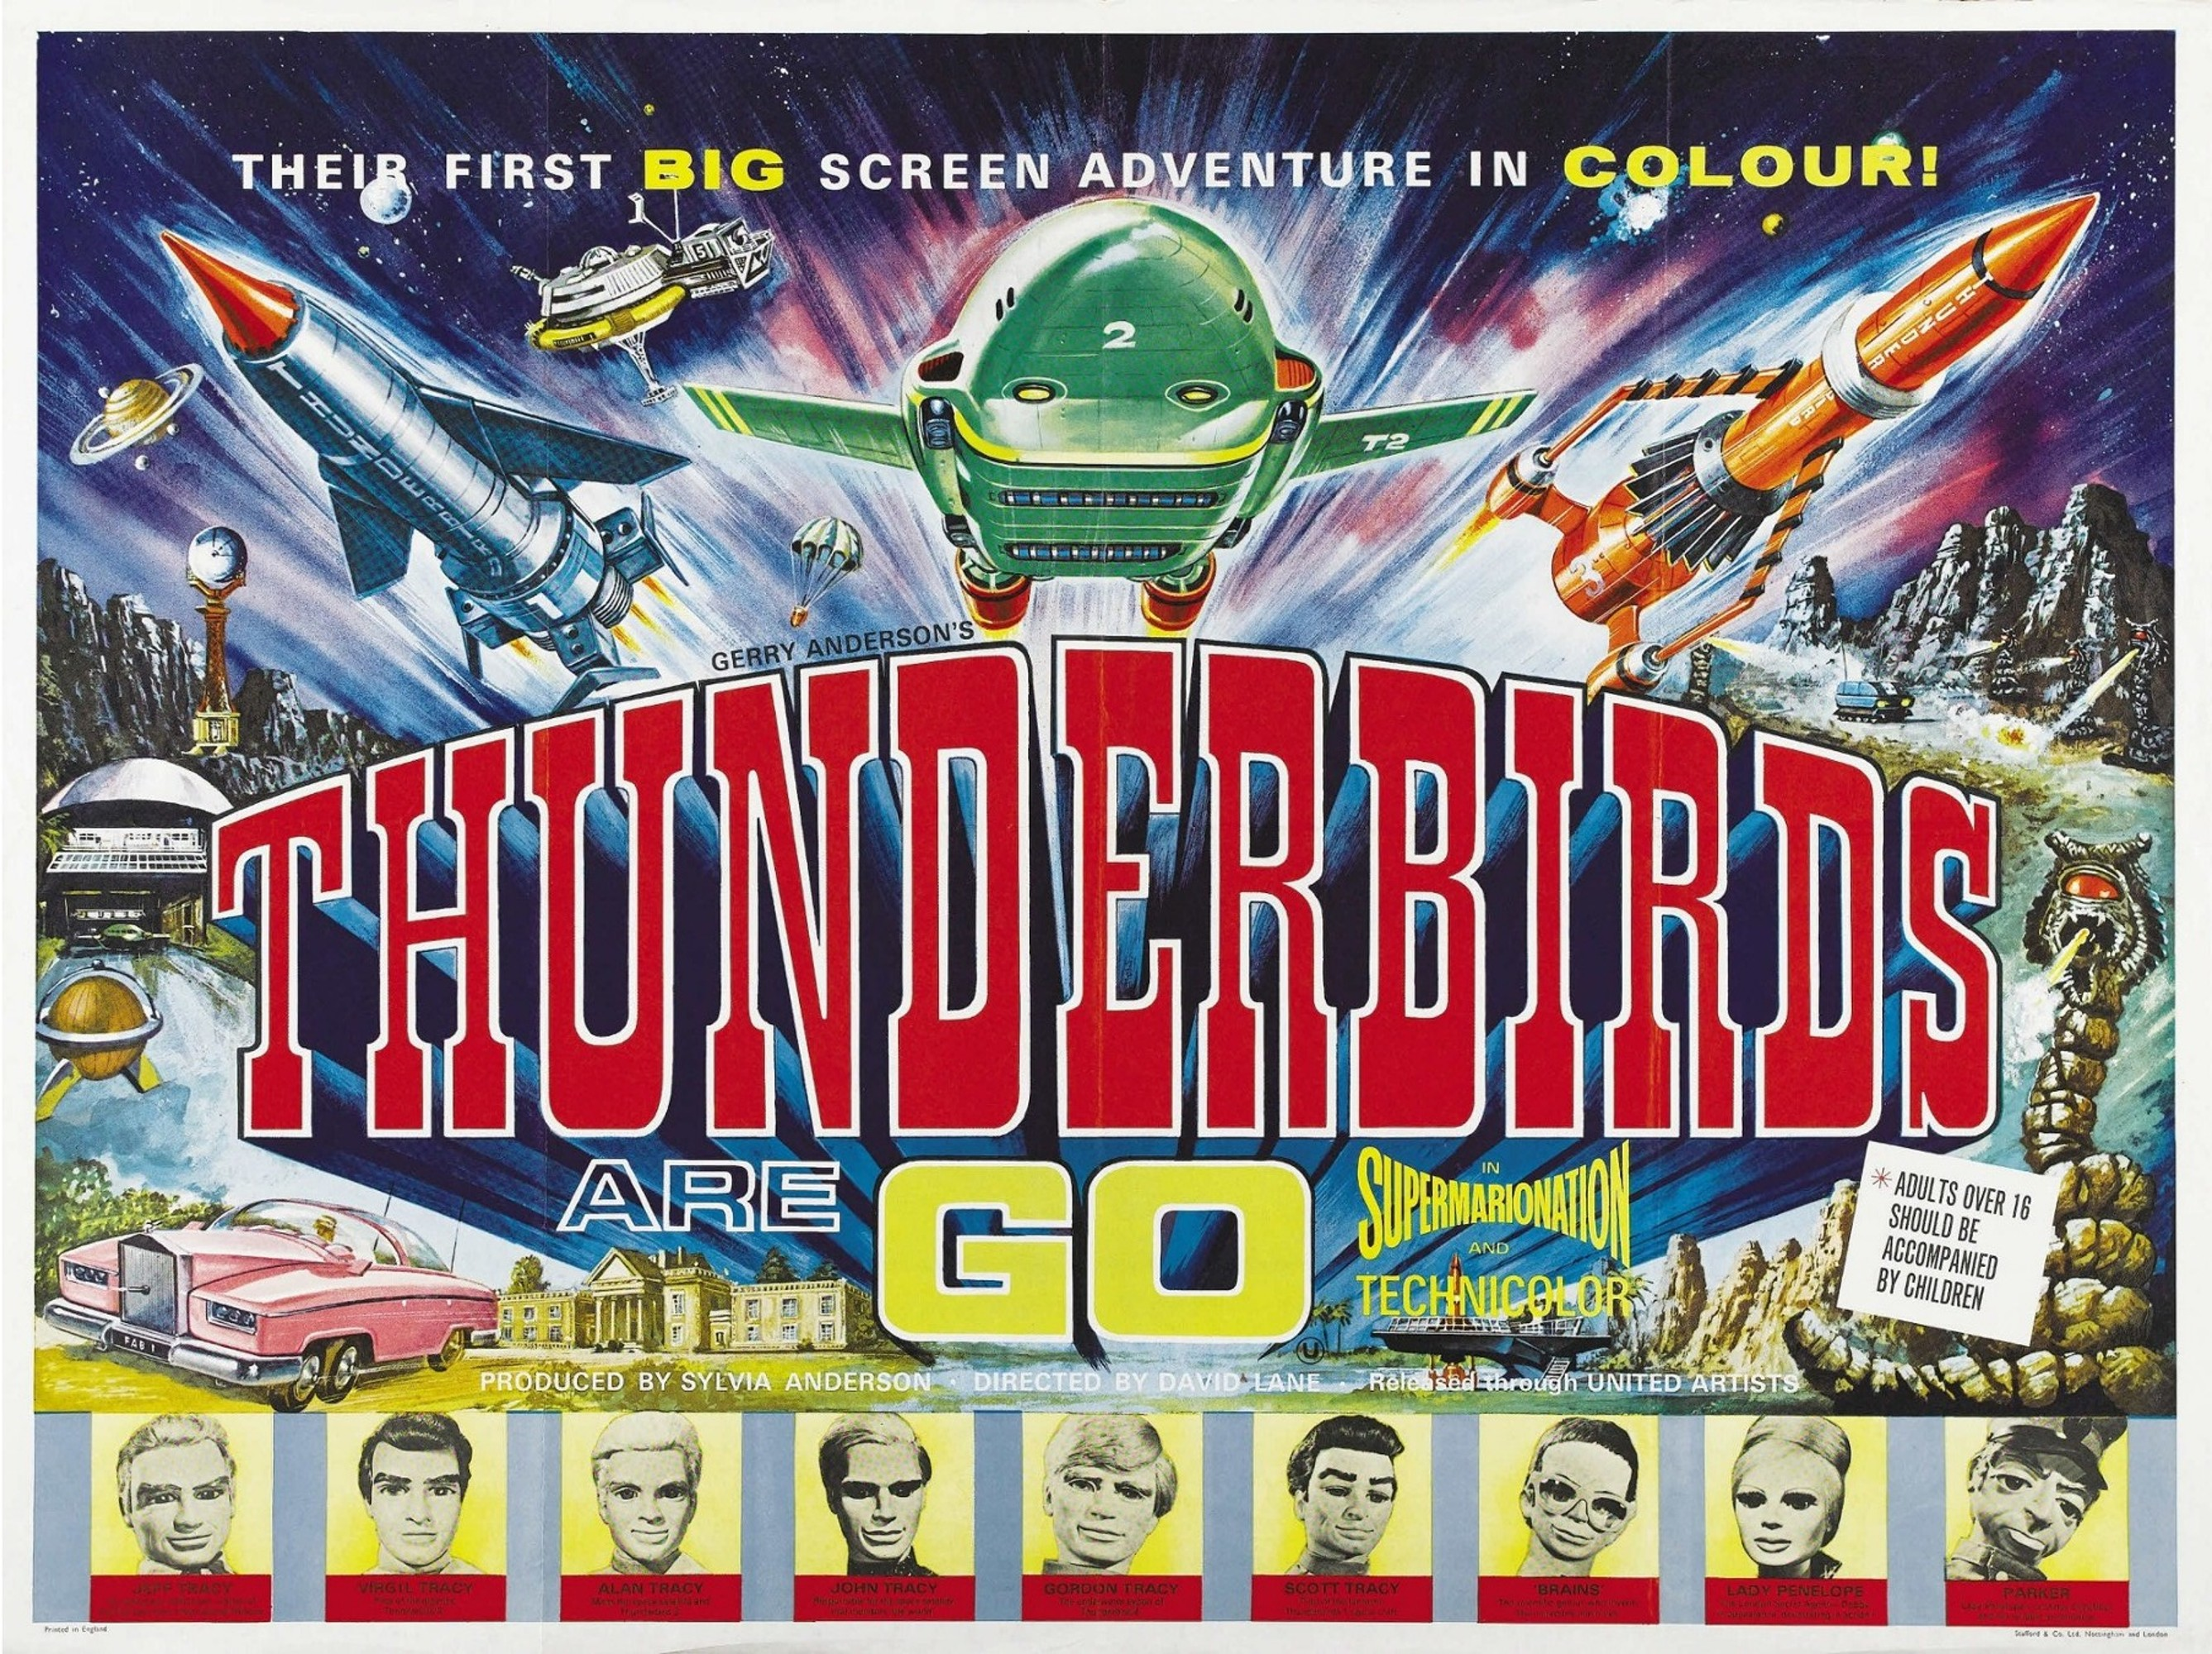 Gerry Anderson: anythi...